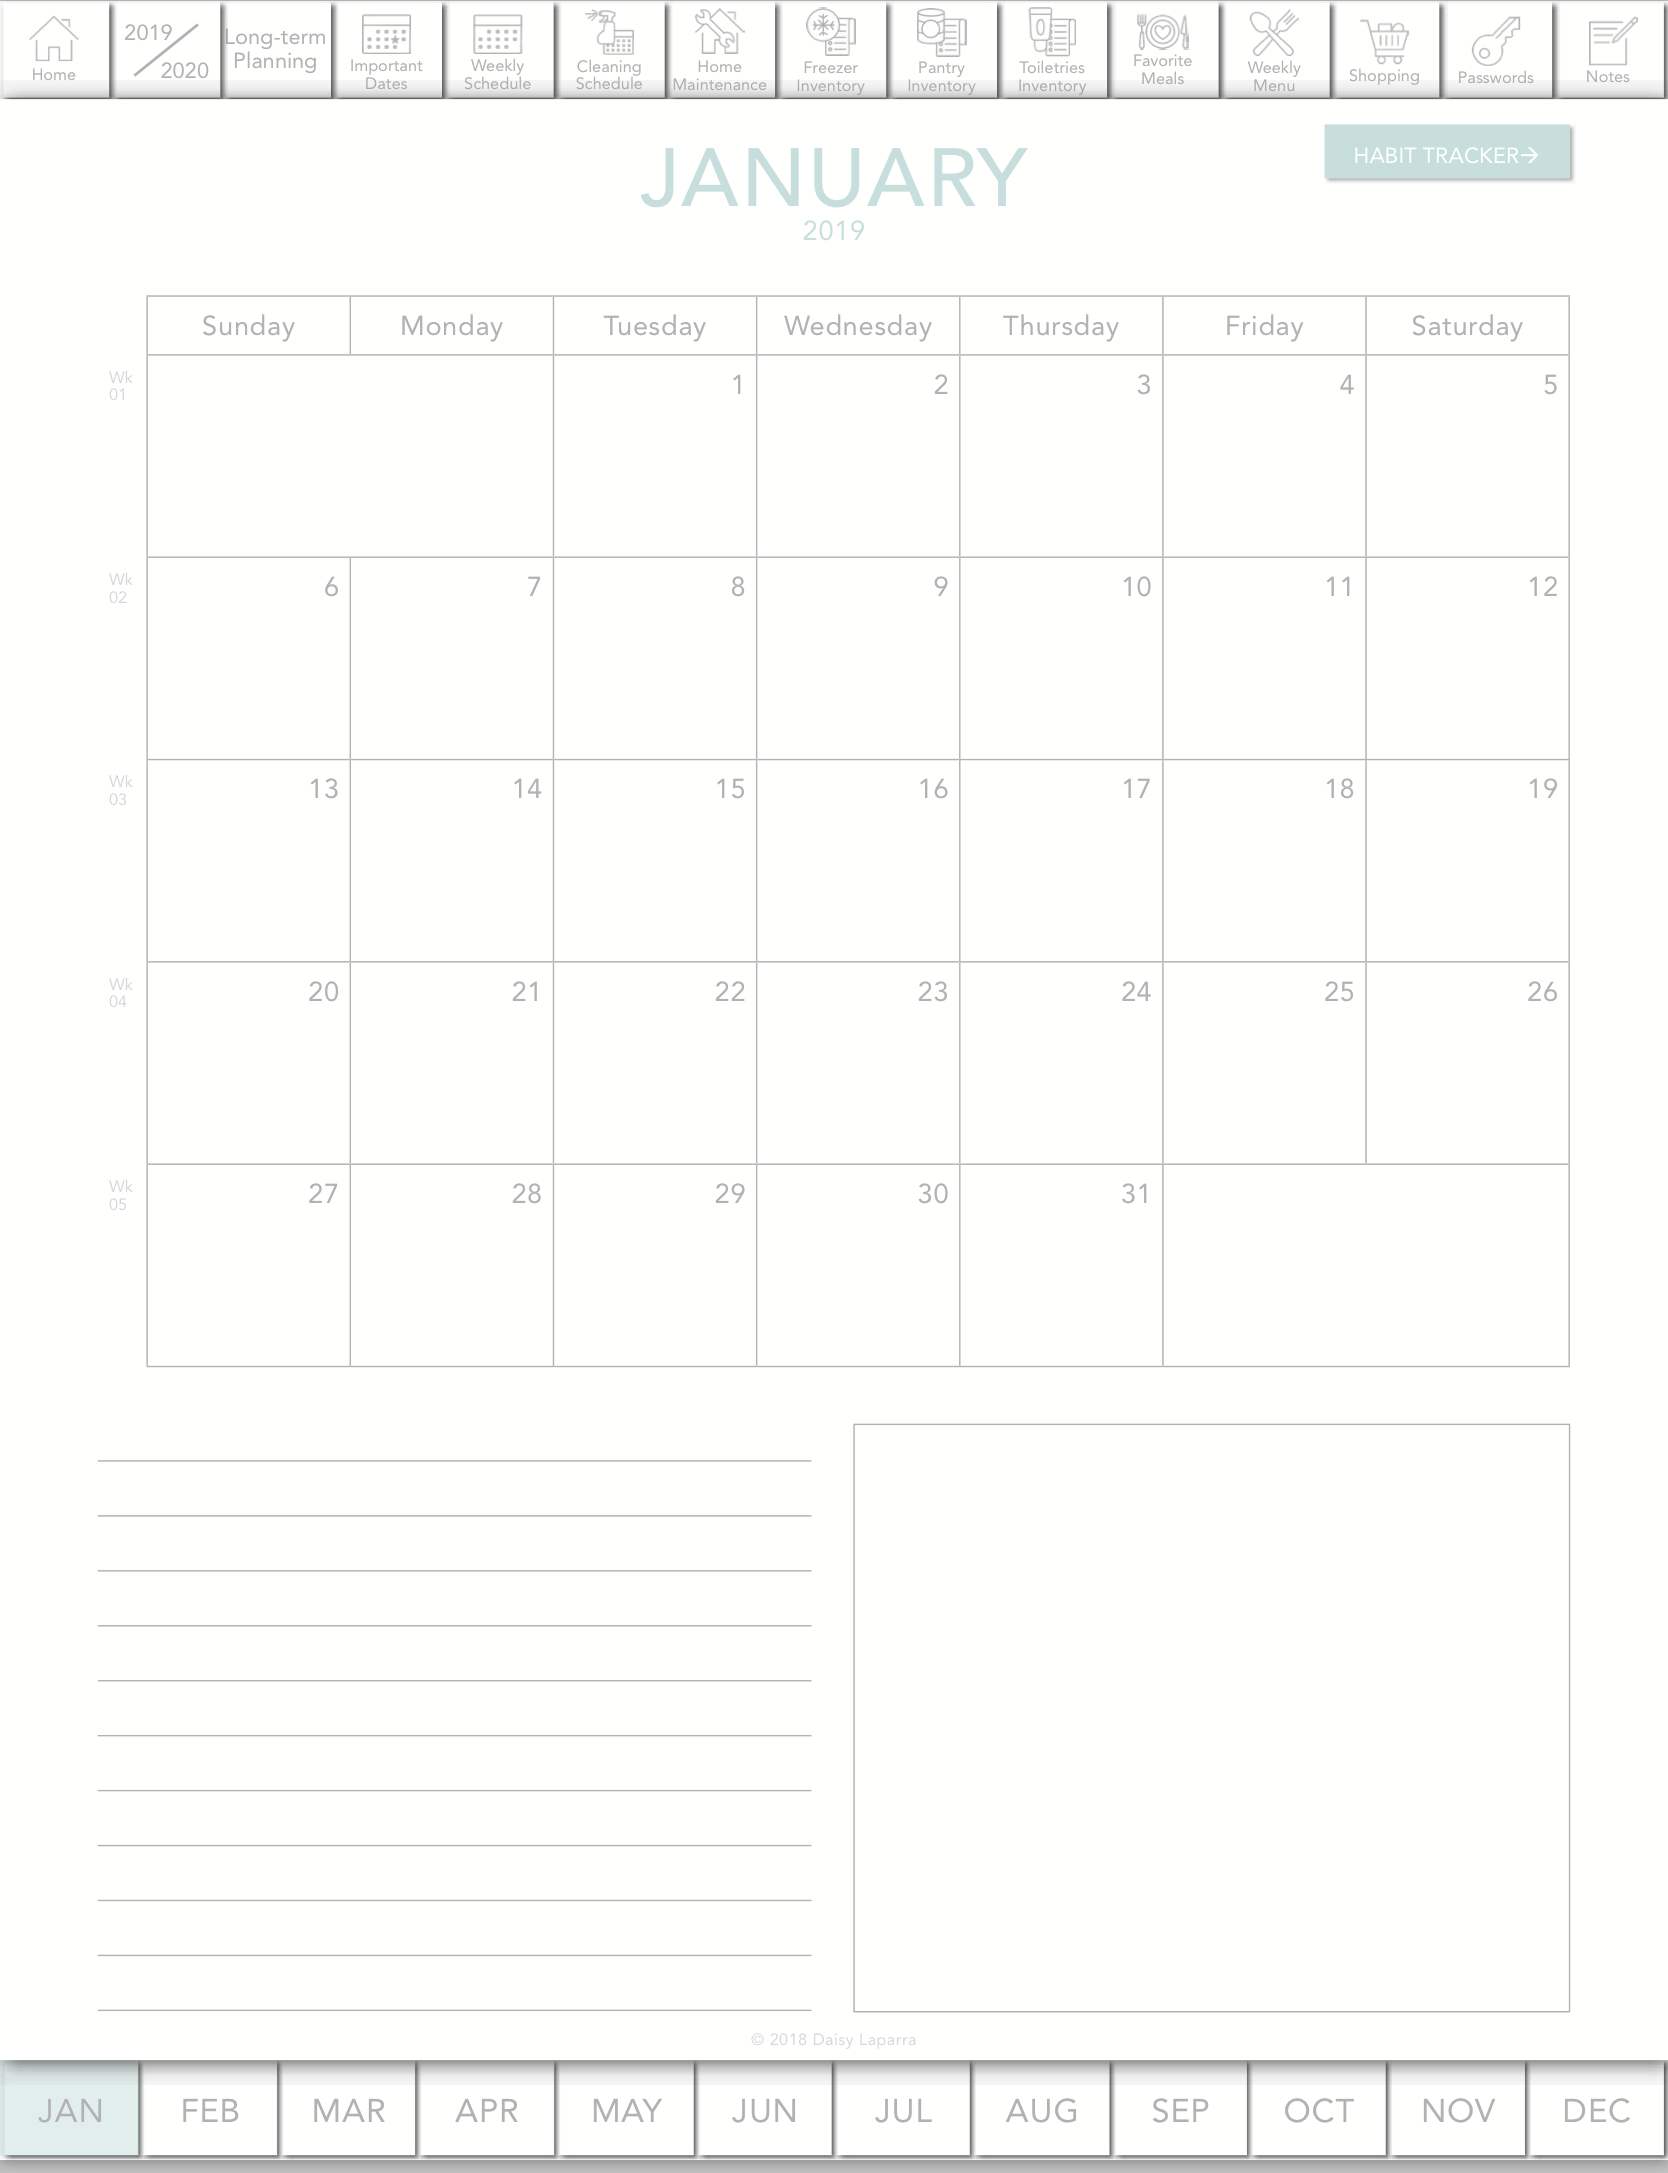 Digital planner with hyperlink to monthly view